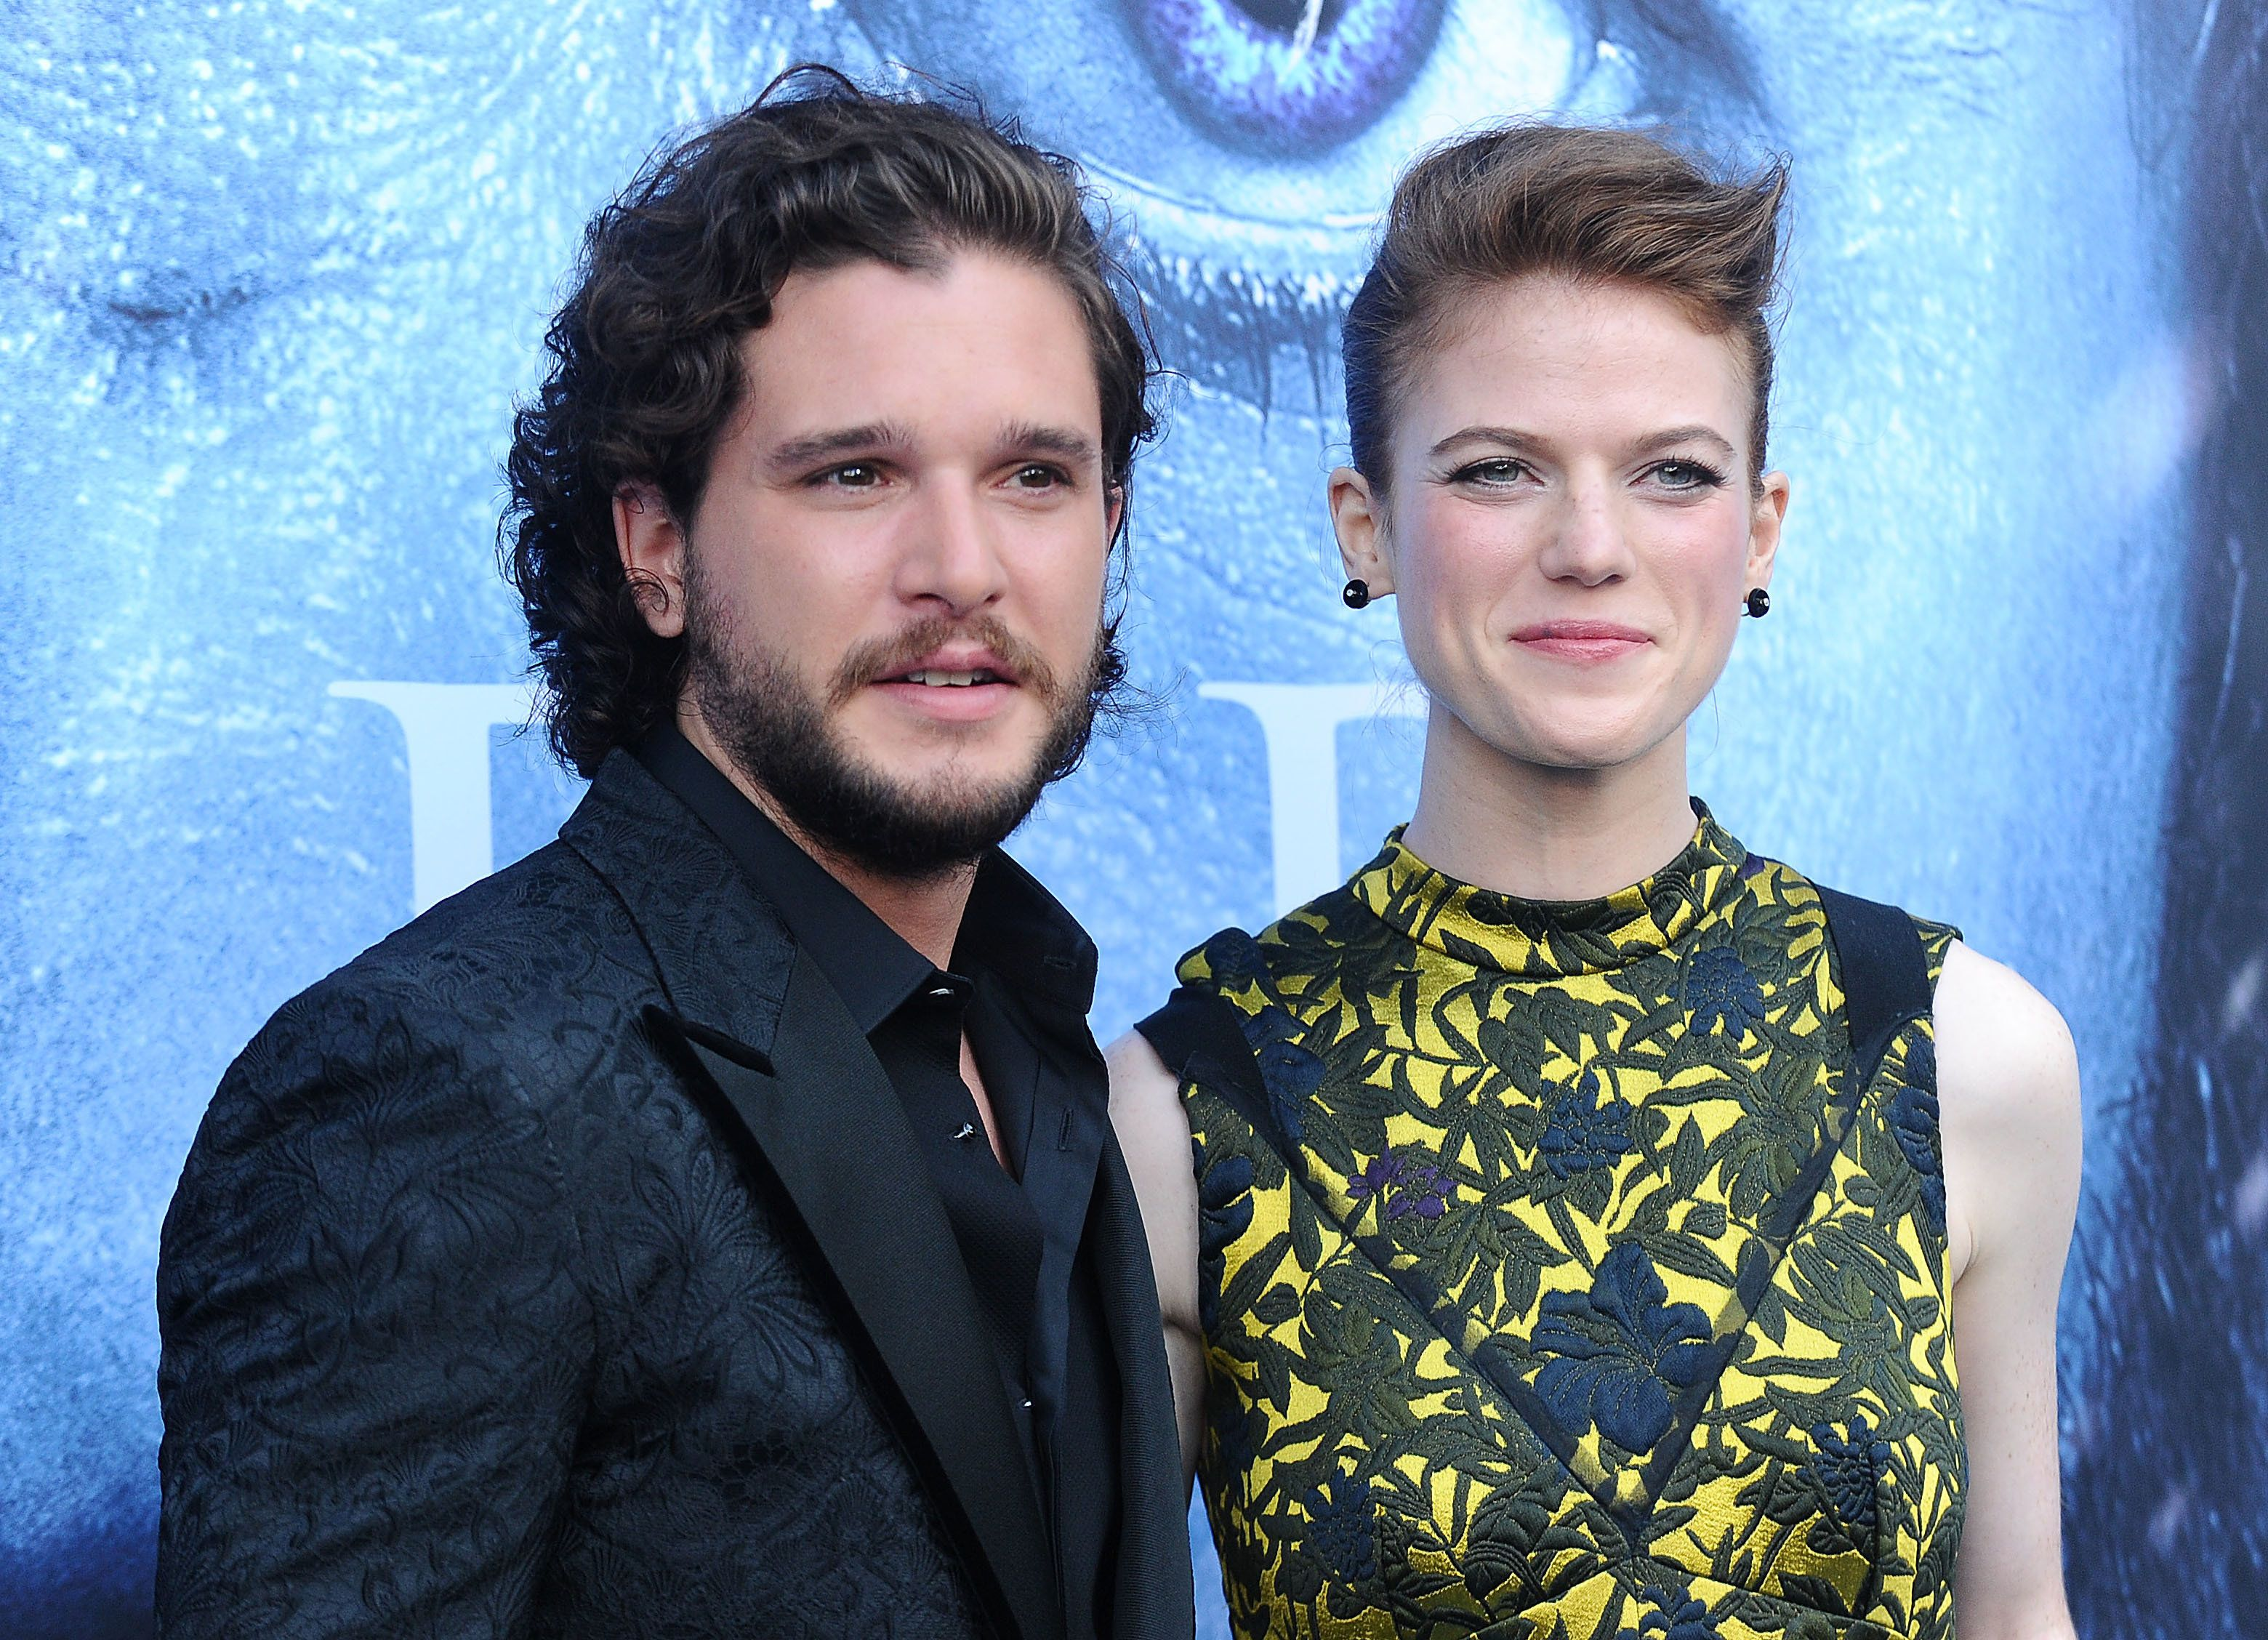 LOS ANGELES, CA - JULY 12:  Actor Kit Harington and actress Rose Leslie attend the season 7 premiere of 'Game Of Thrones' at Walt Disney Concert Hall on July 12, 2017 in Los Angeles, California.  (Photo by Jason LaVeris/FilmMagic)